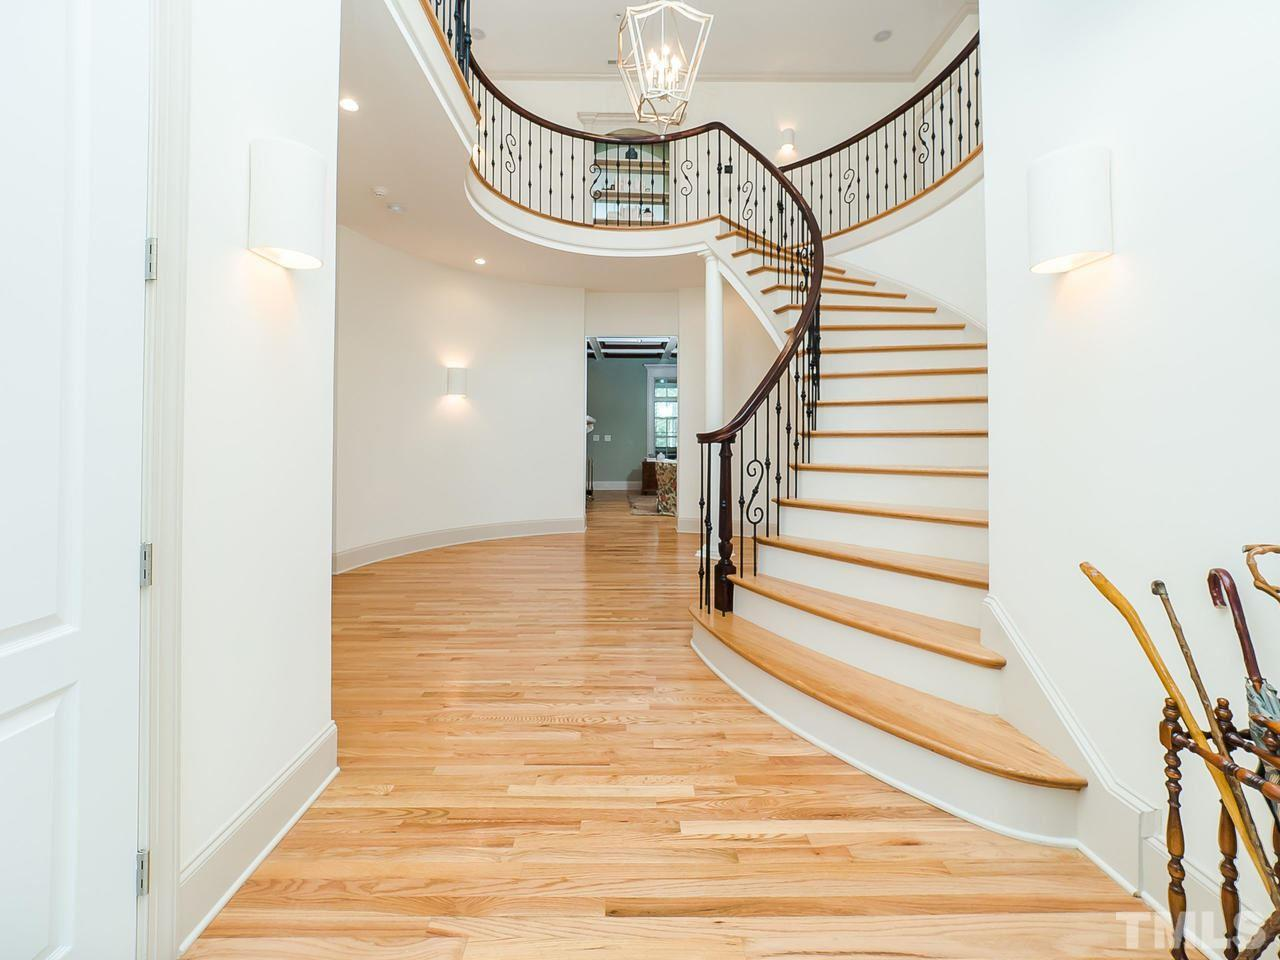 Grand Foyer with dramatic sweeping staircase.  Features wrought iron railing. Gorgeous hardwoods throughout the main areas.